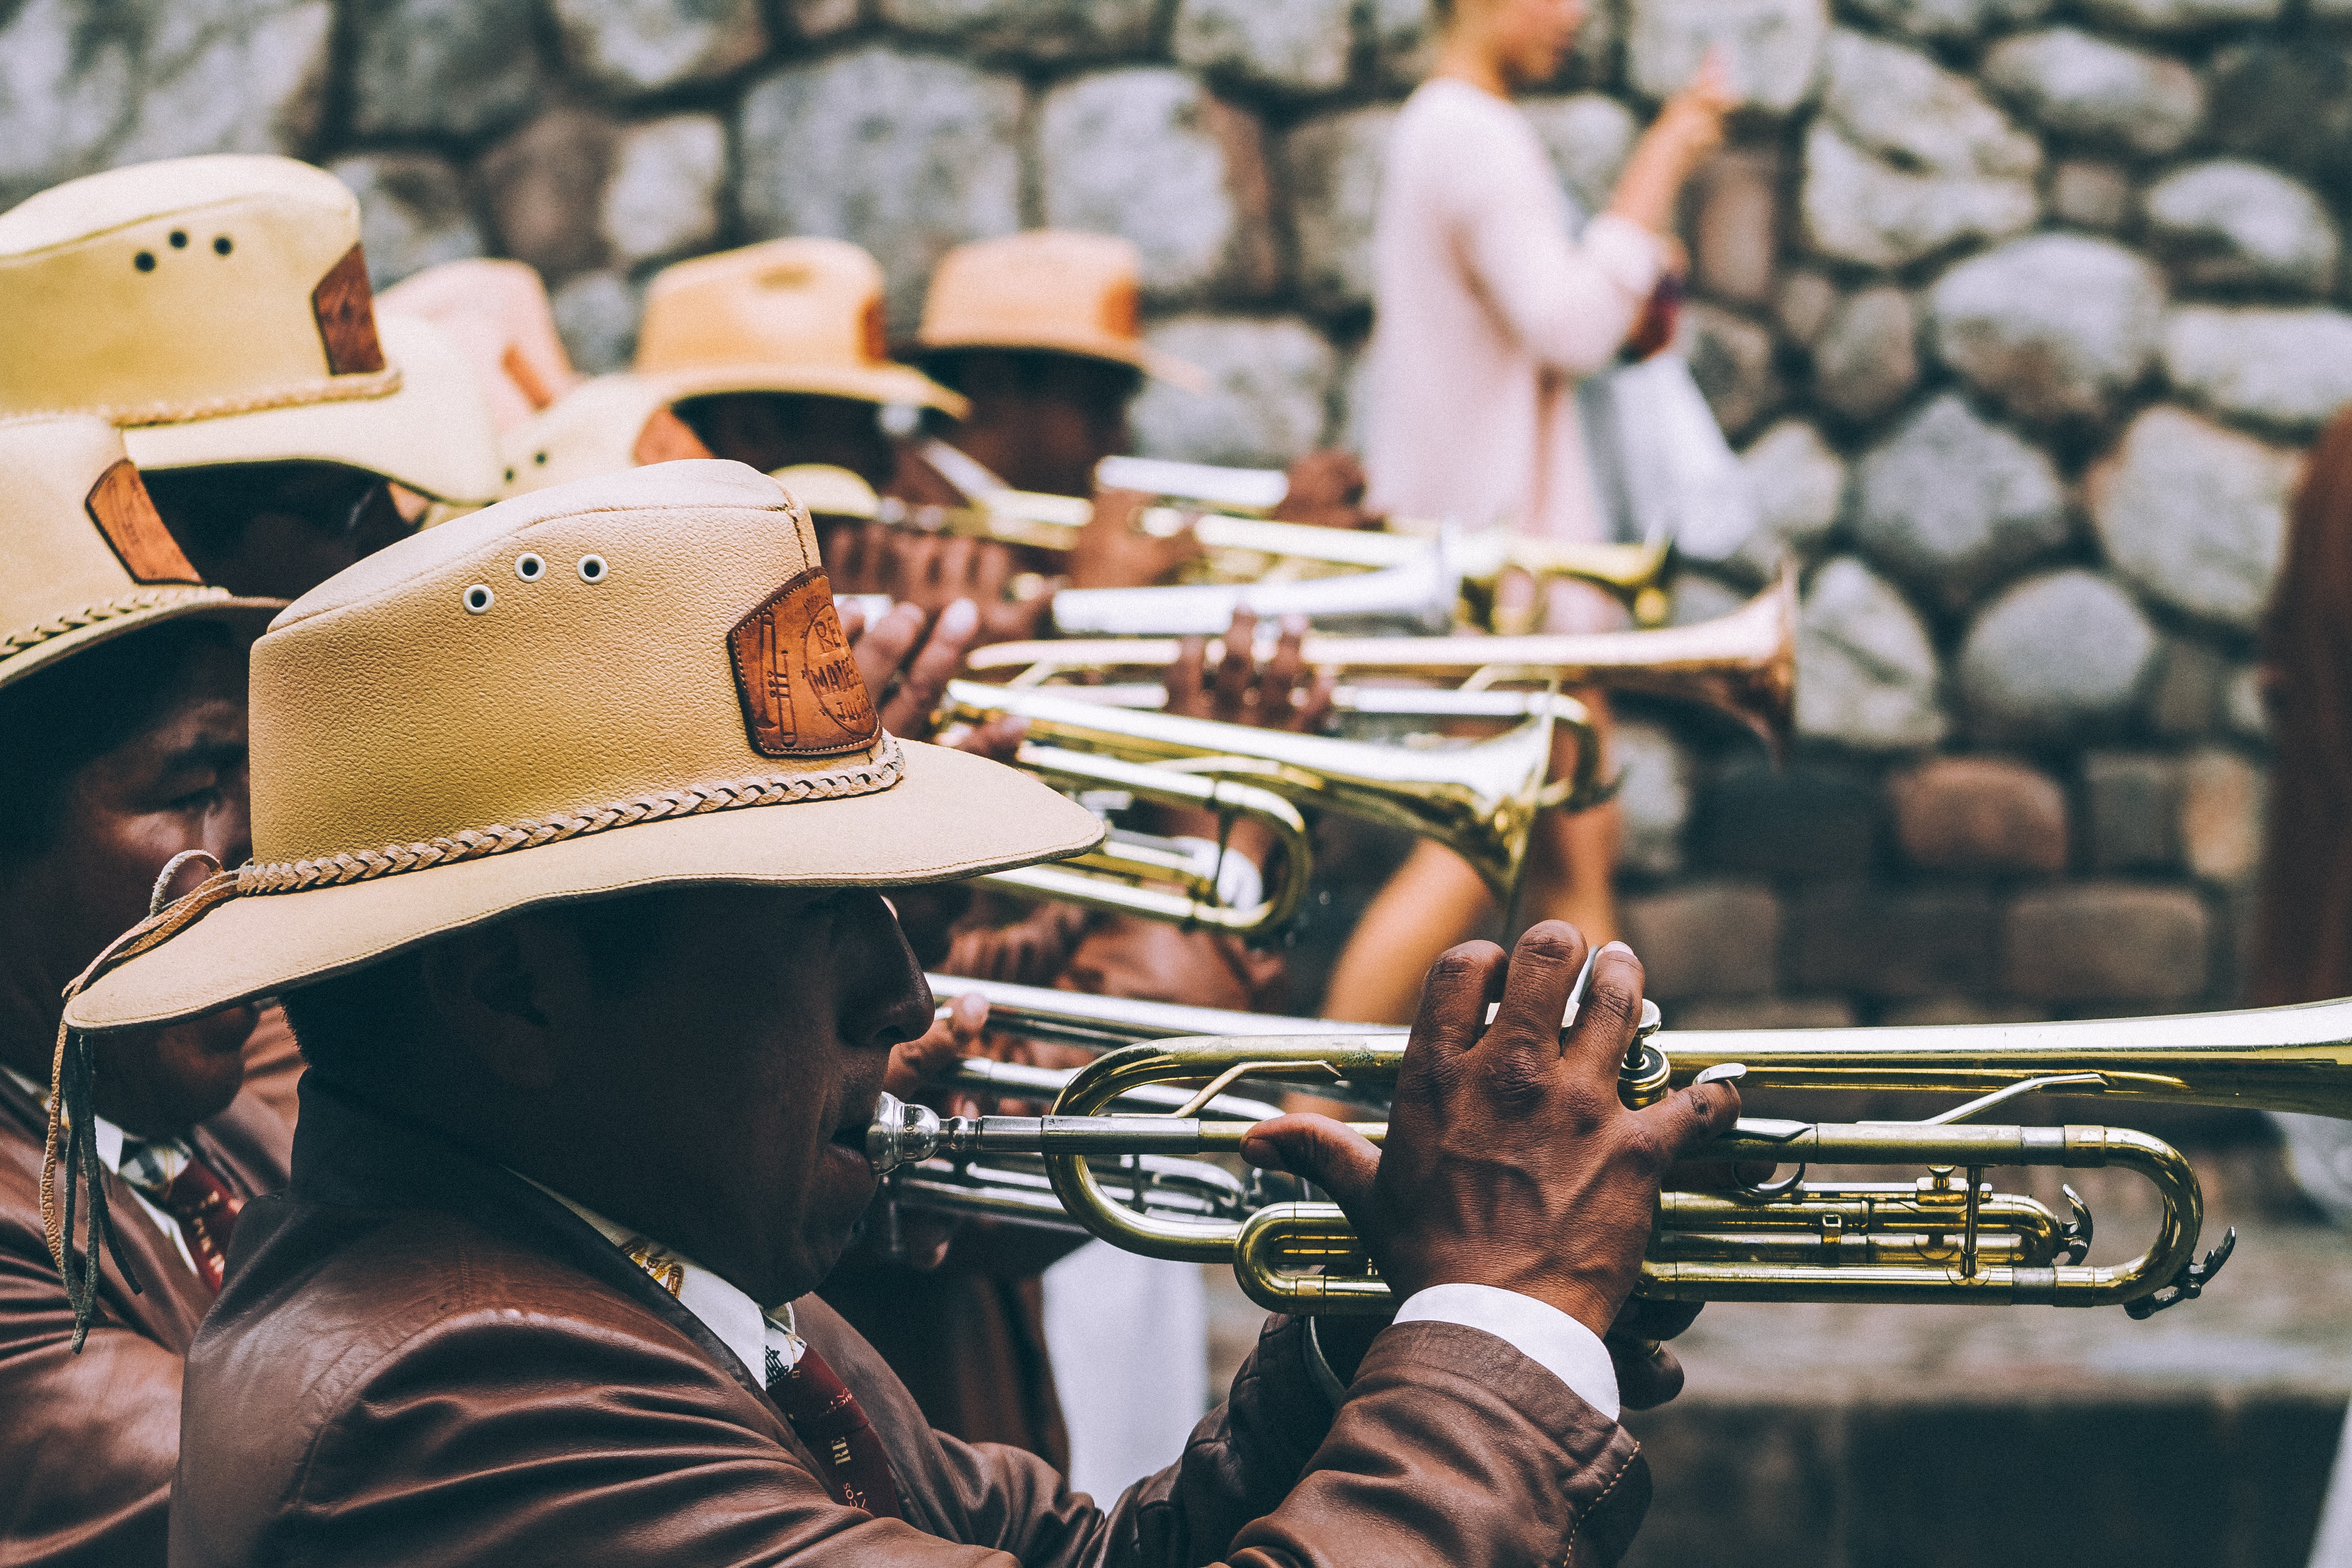 Trumpets players in uniforms are playing in a marching band on the street.